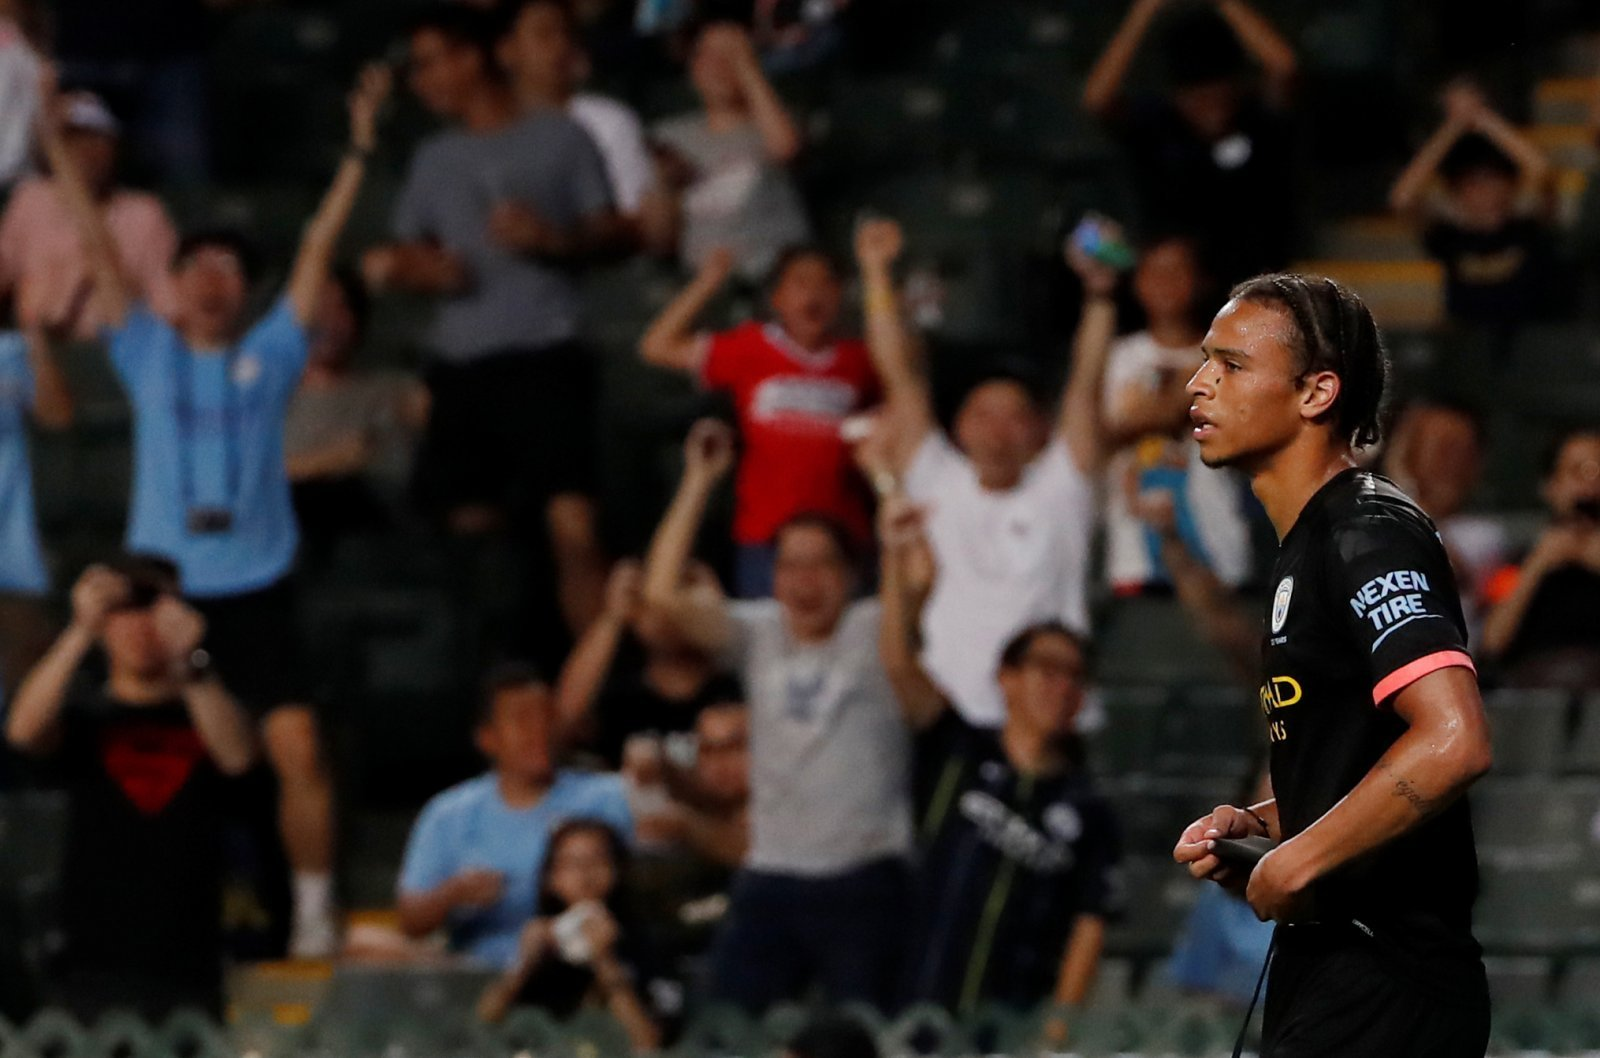 Manchester City: Club hoping Leroy Sane will sign a new deal